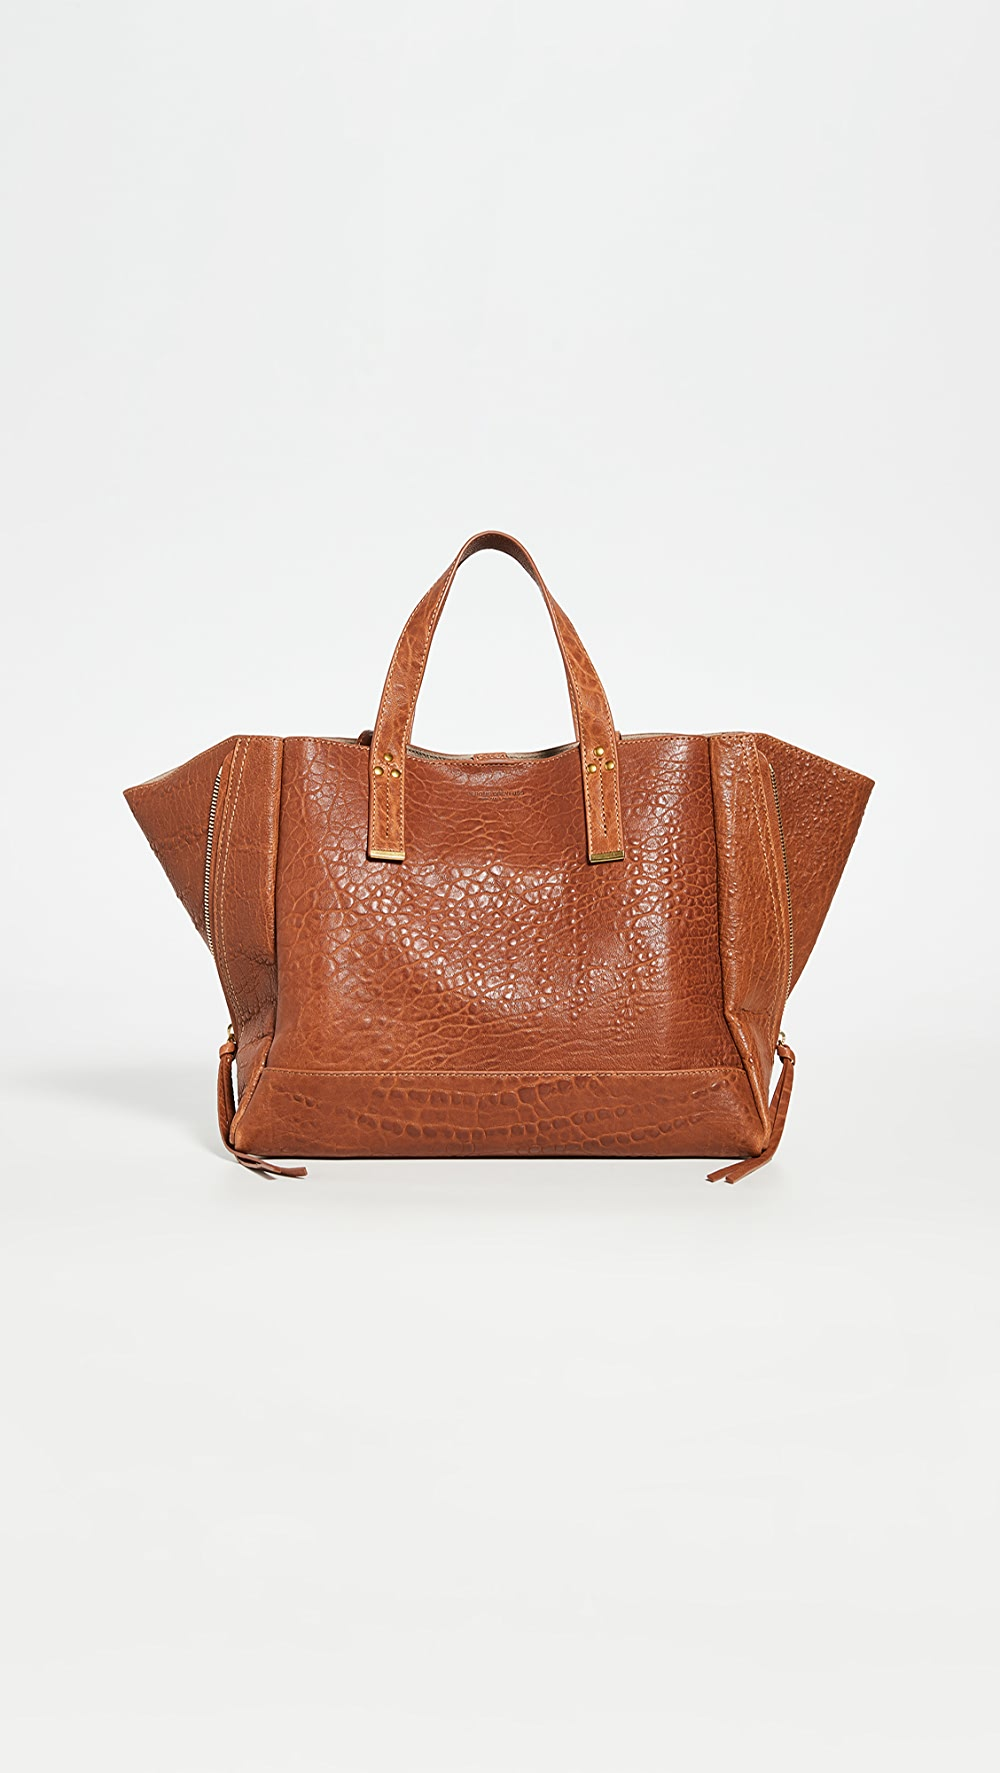 Analytical Jerome Dreyfuss - Georges Tote Bag Latest Fashion